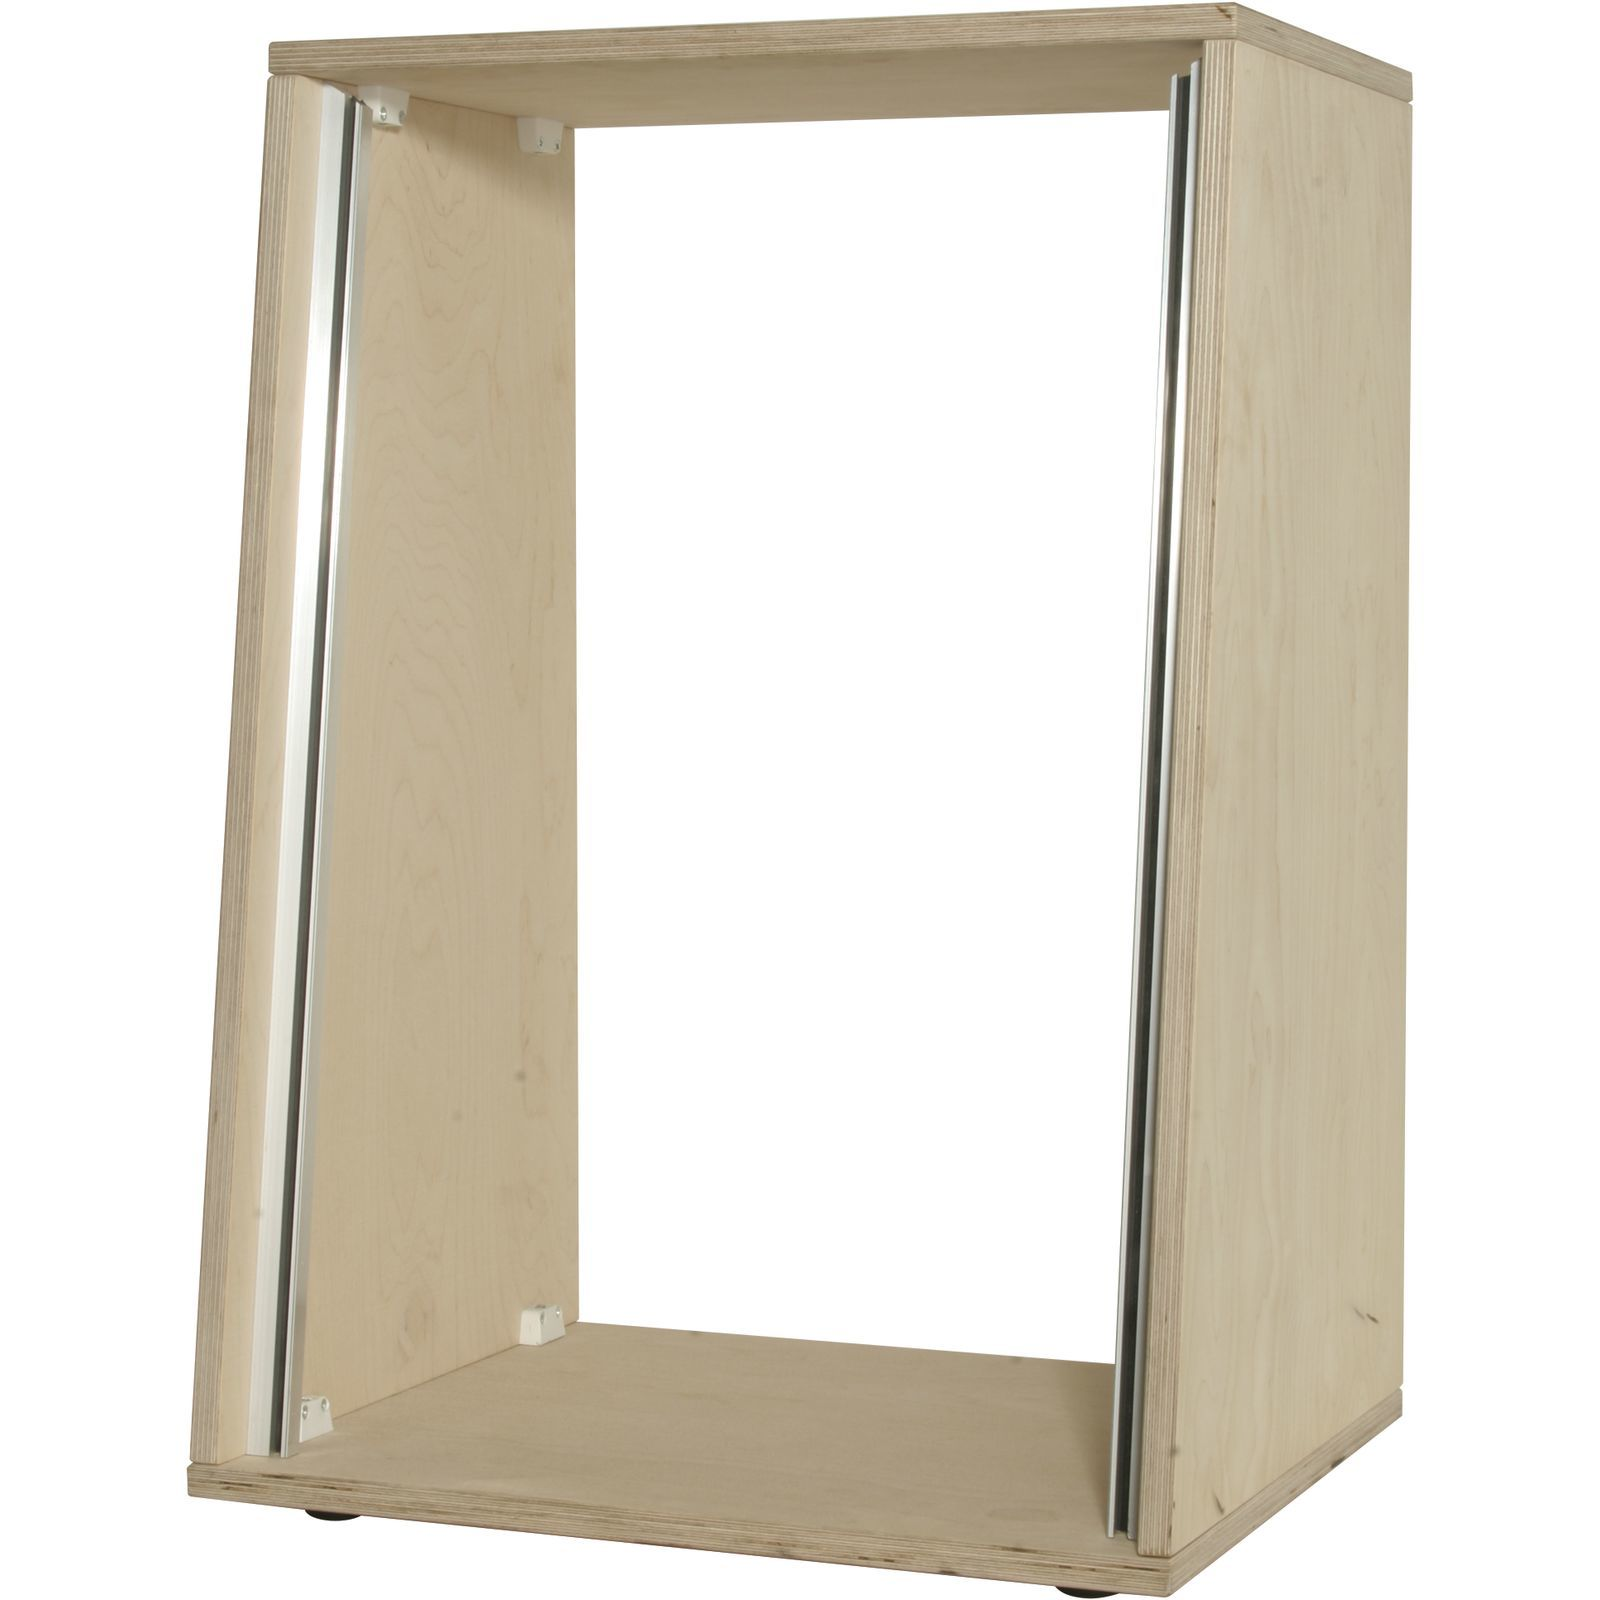 MUSIC STORE Studiorack 16 HE Birch MP roh Kit, 7° angled Produktbillede